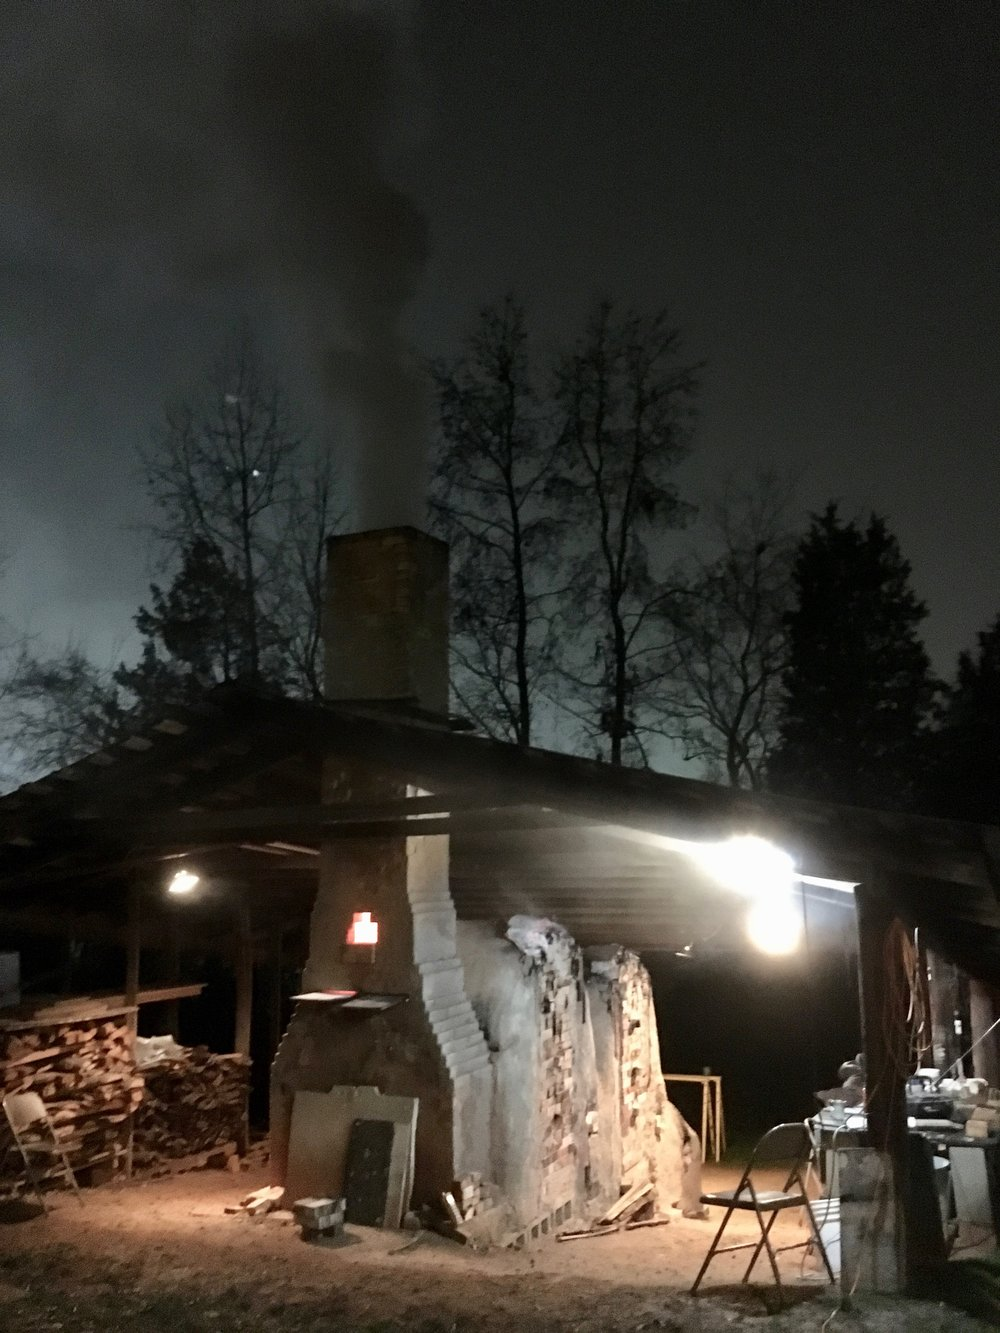 The second chamber of the kiln is salted.  We introduced ten pounds of salt and held at top temperature for an hour.  The kiln was shut down after 16 hours of firing.